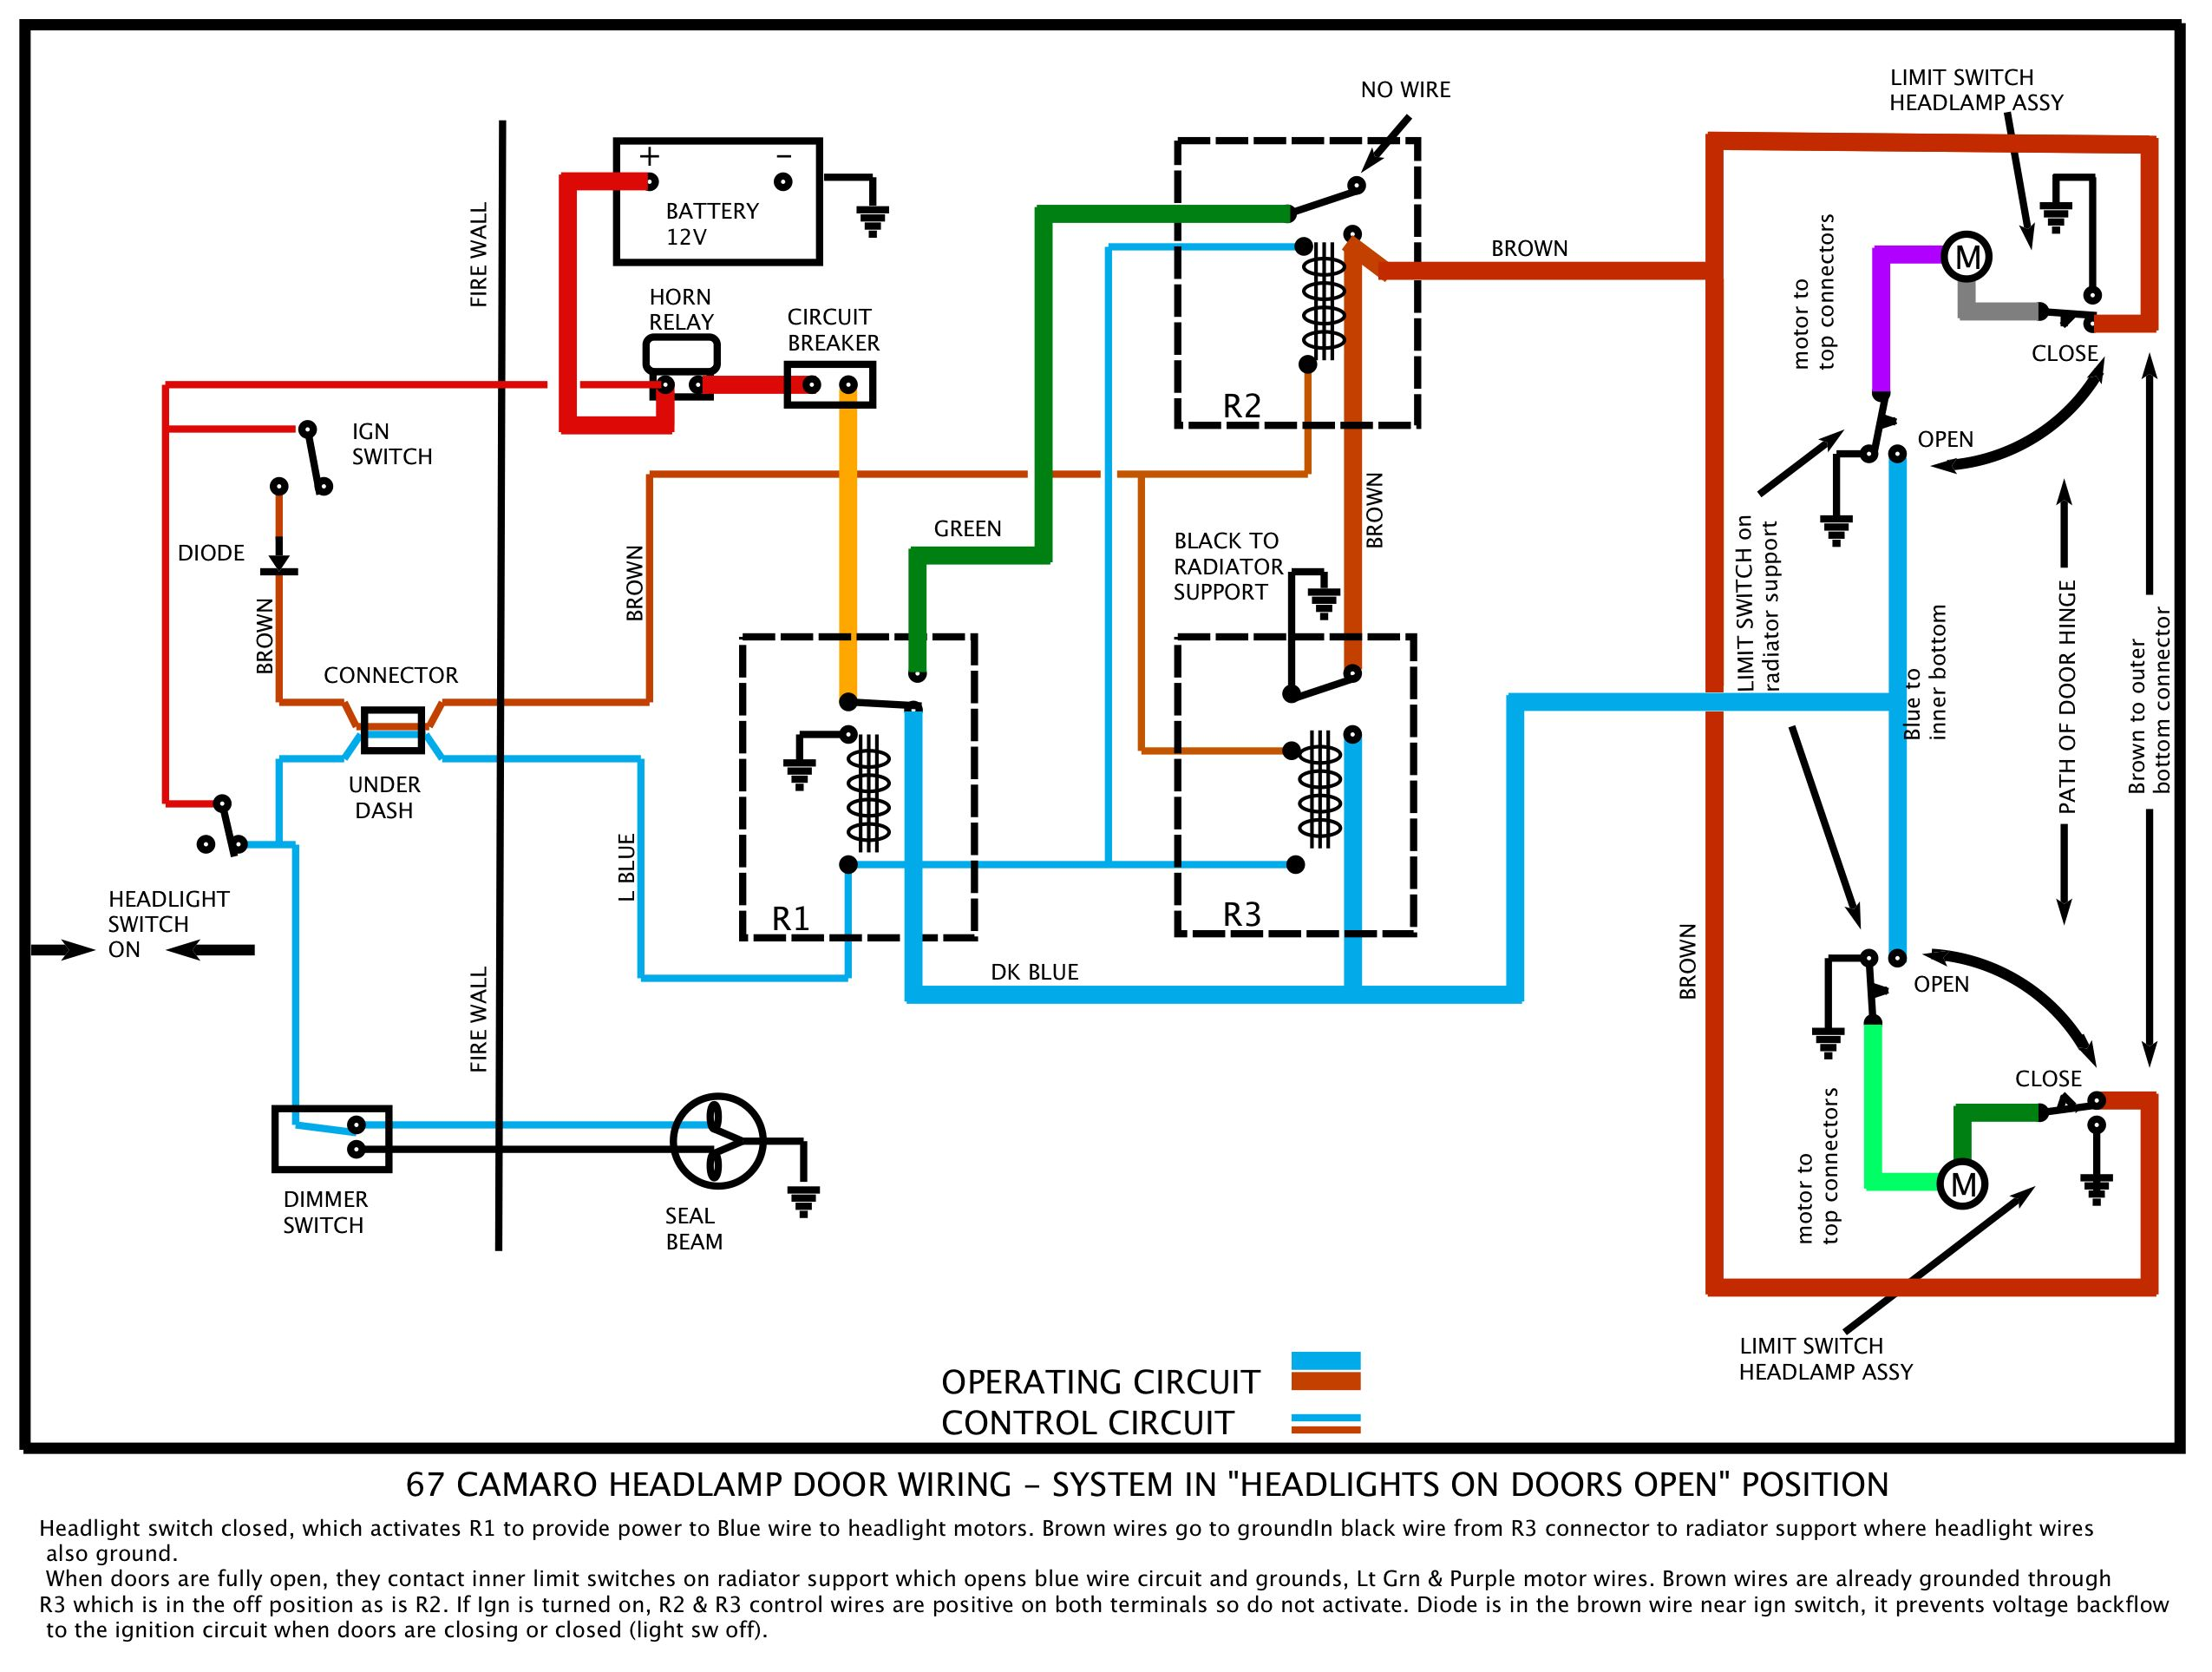 69 Road Runner Wiring Diagram Schematic Will Be A Plymouth Roadrunner Nova Ignition Switch Data Schema Rh Site De Joueurs Com Electrical Symbols Basic Speaker Schematics